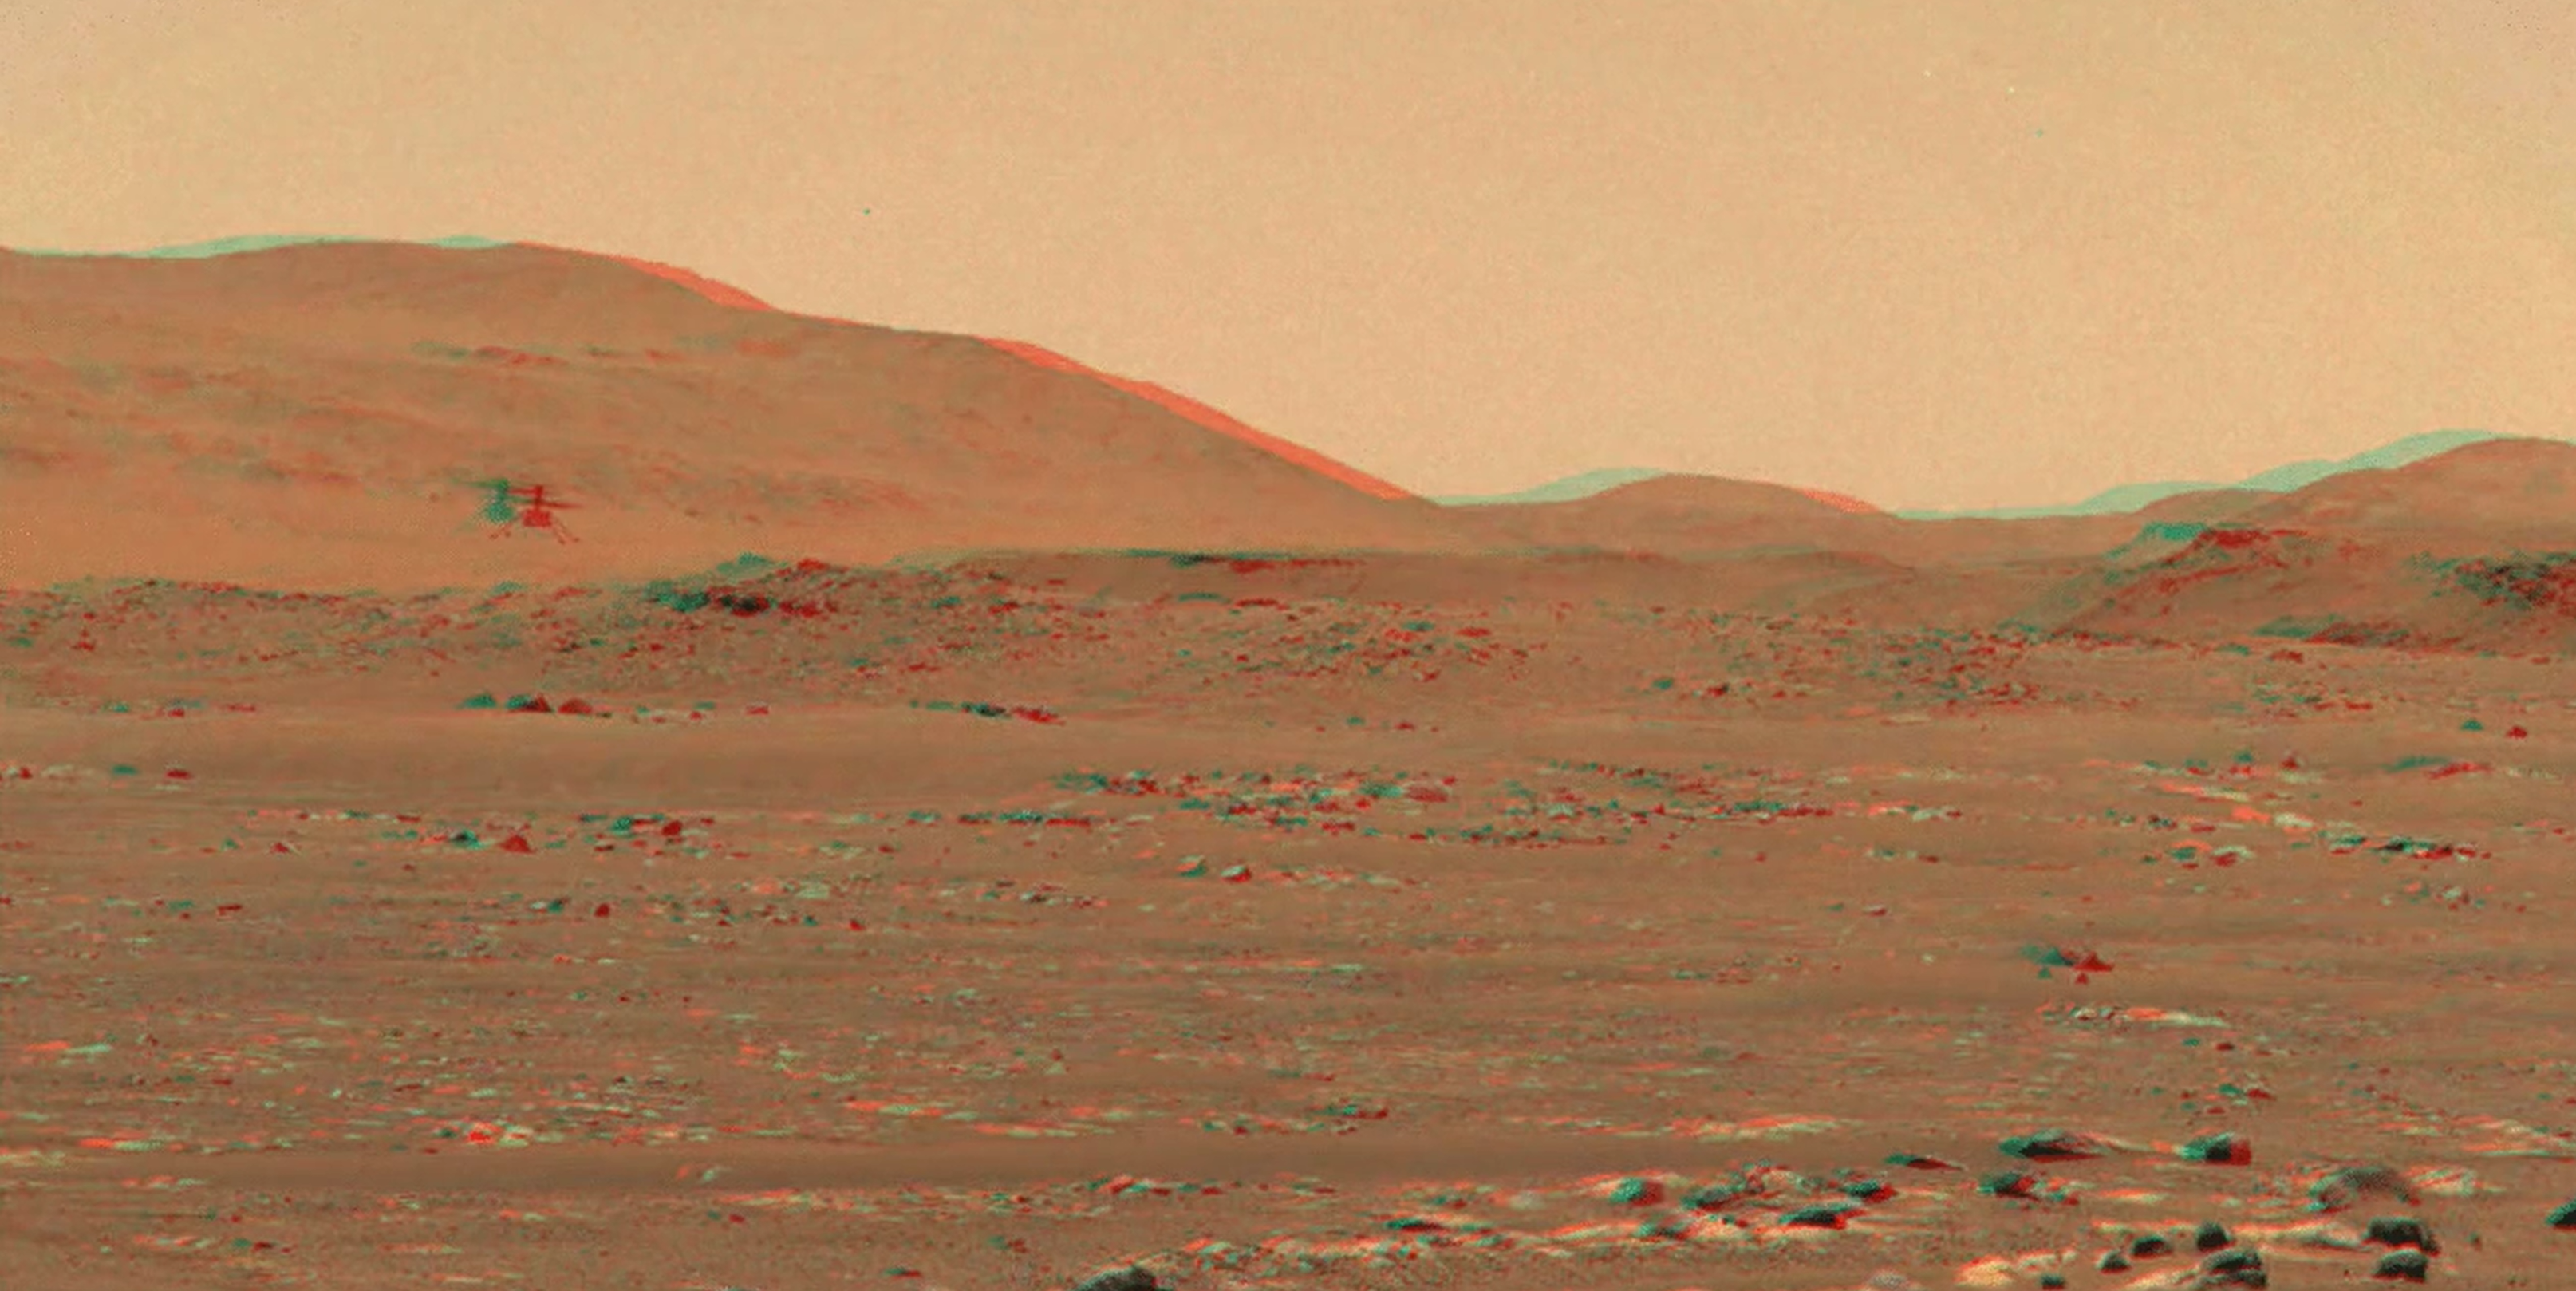 See NASA's Ingenuity Helicopter Fly over Mars in Spectacular 3D Video